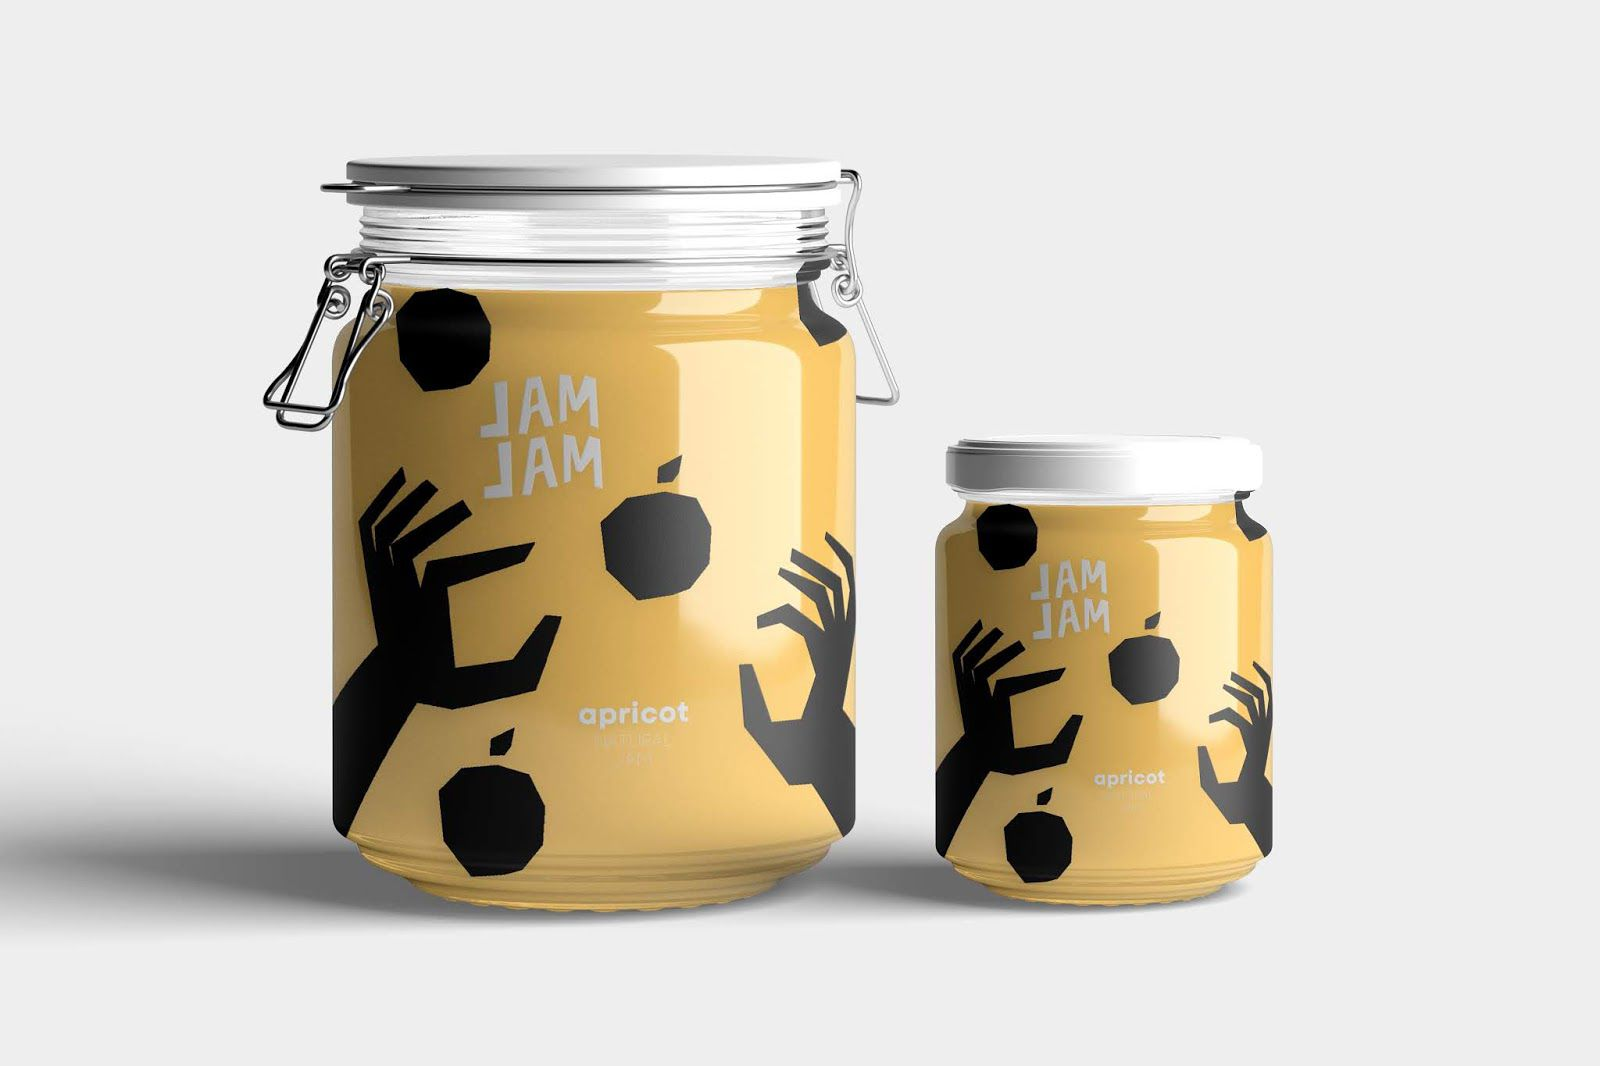 Jam Jam (confiture) I Design (projet étudiant) : Qaes Al-atoom (HSE Art and Design School), Russie (mai 2020)